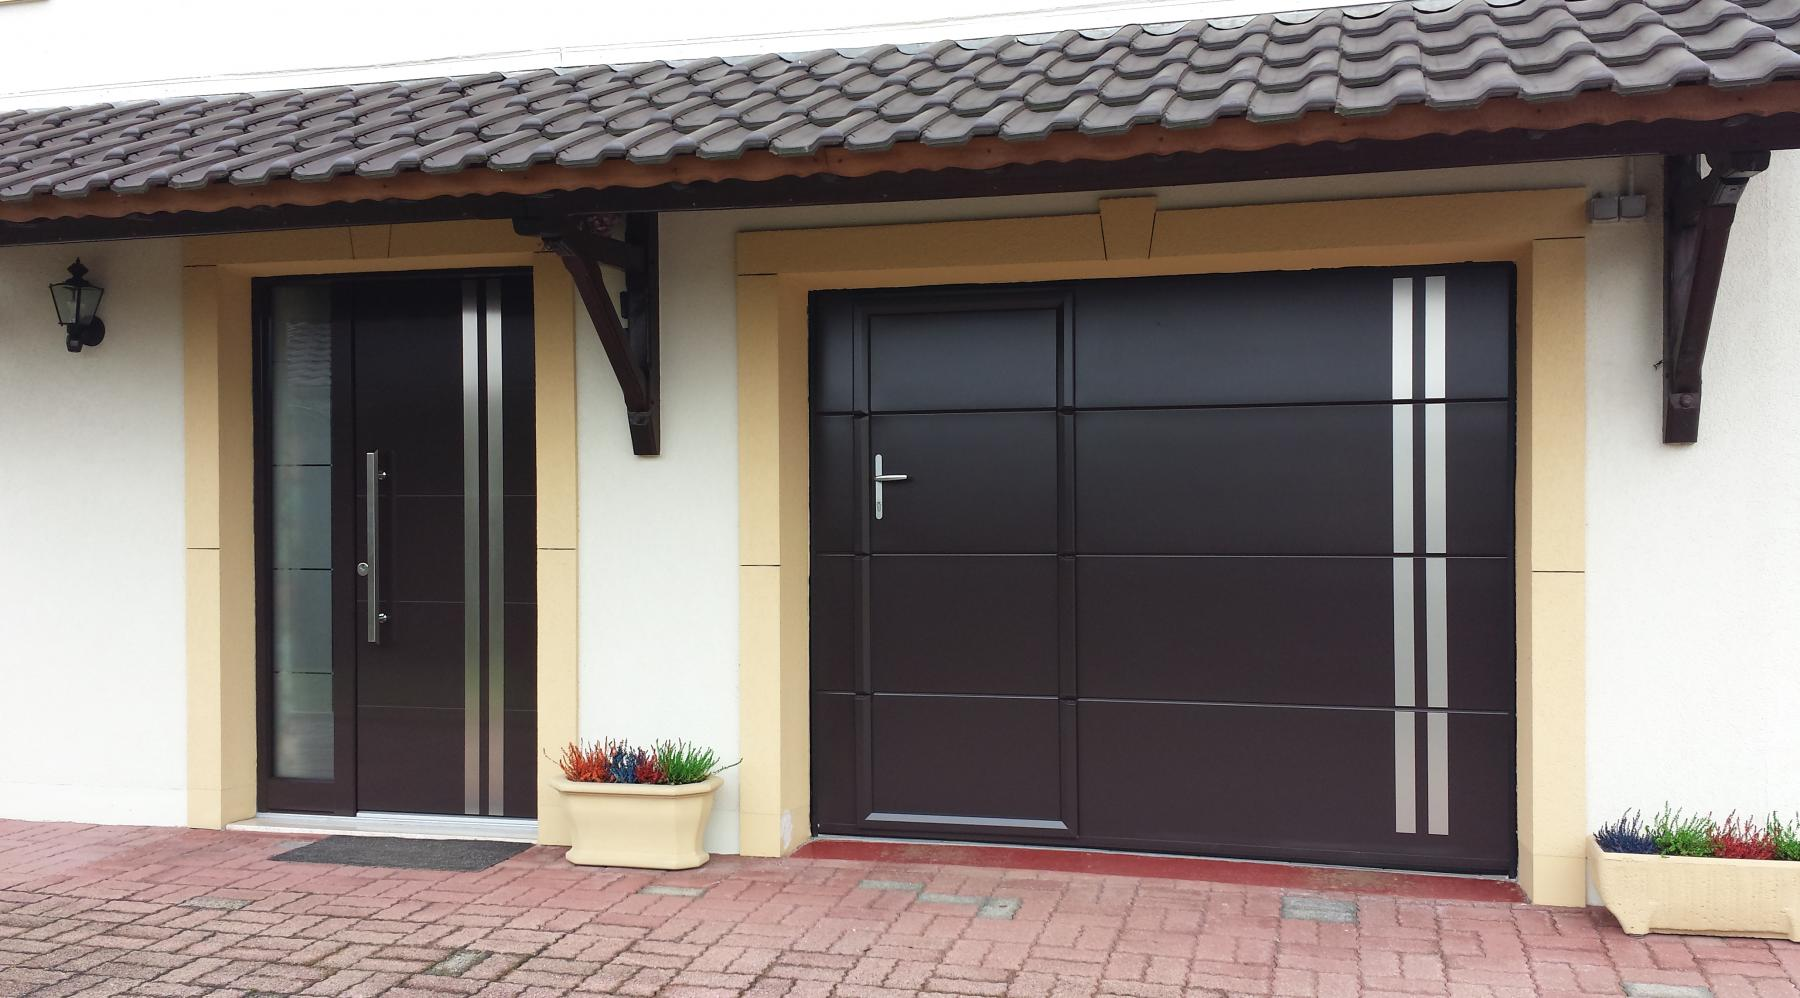 Galerie portes de garage weigerding for Porte de garage avis